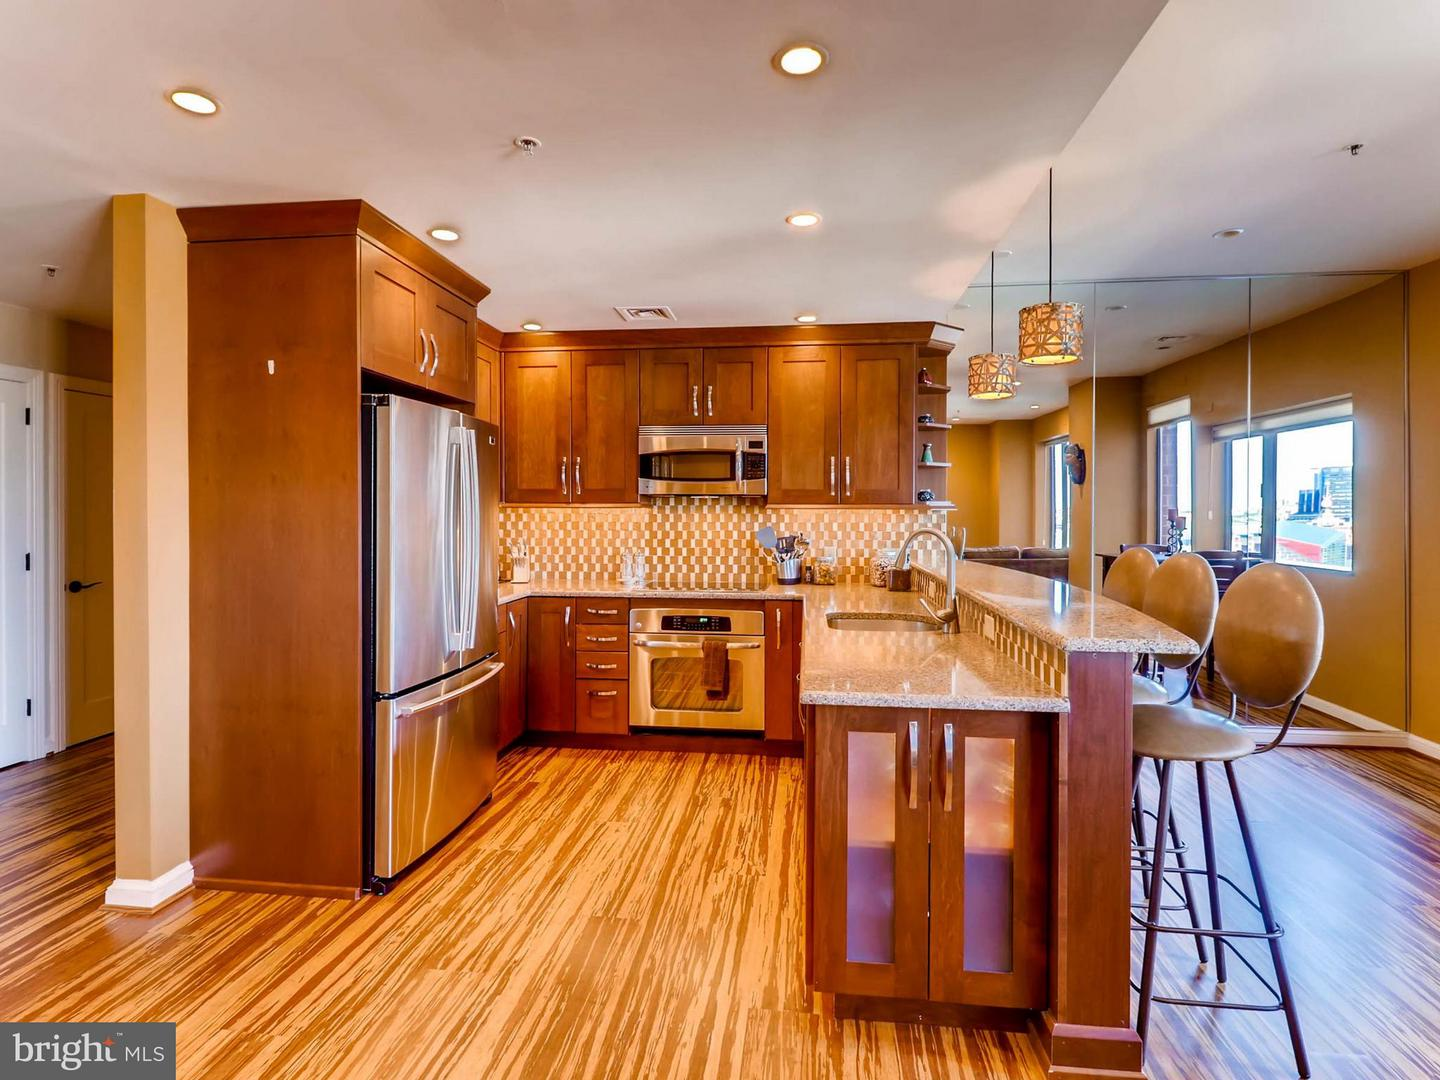 Single Family for Sale at 10 Lee St #1105 Baltimore, Maryland 21202 United States